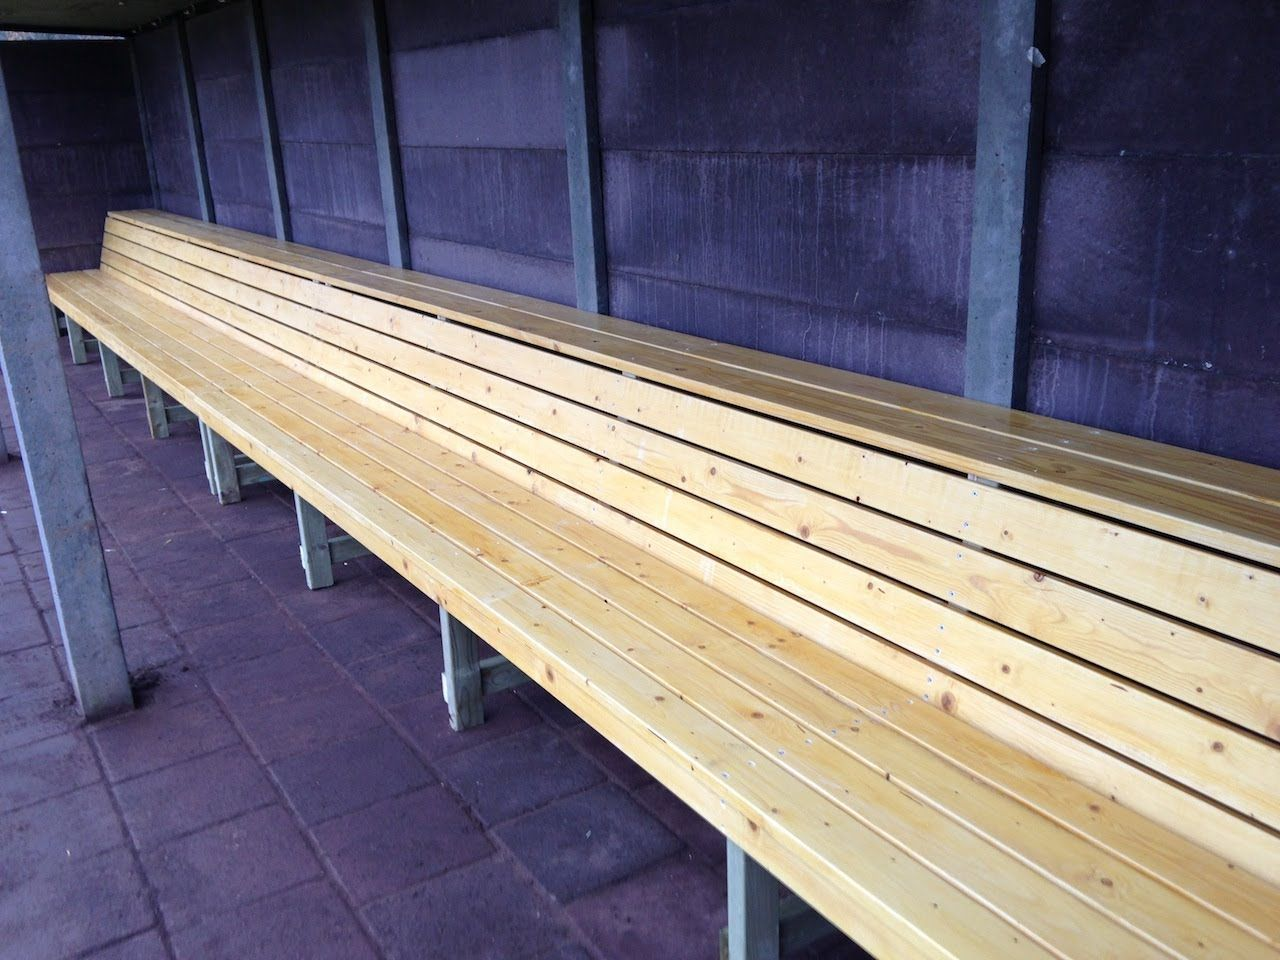 Baseball Dugout Bedroom Designs: How To Build Baseball Dugout Benches - YouTube